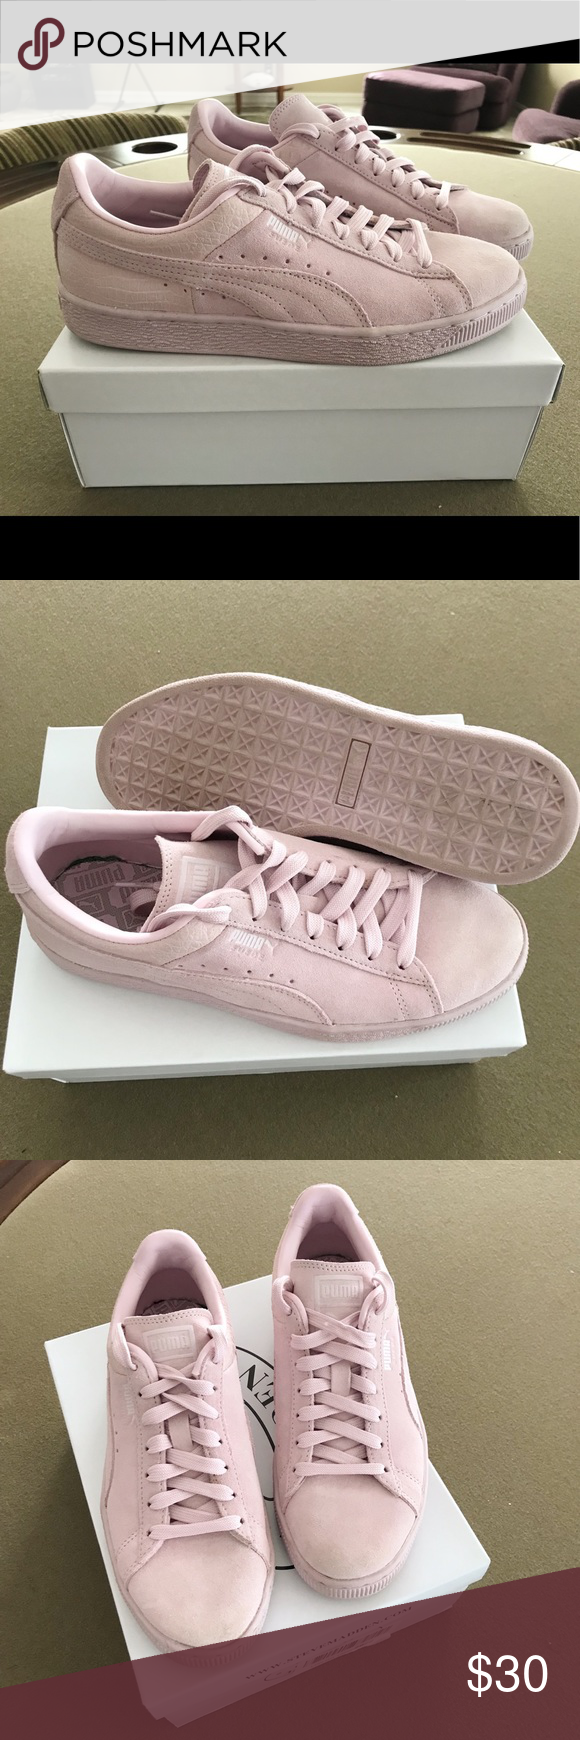 53e8bc95ac12ae Light pink suede puma shoes png 580x1740 Light pink suede pumas